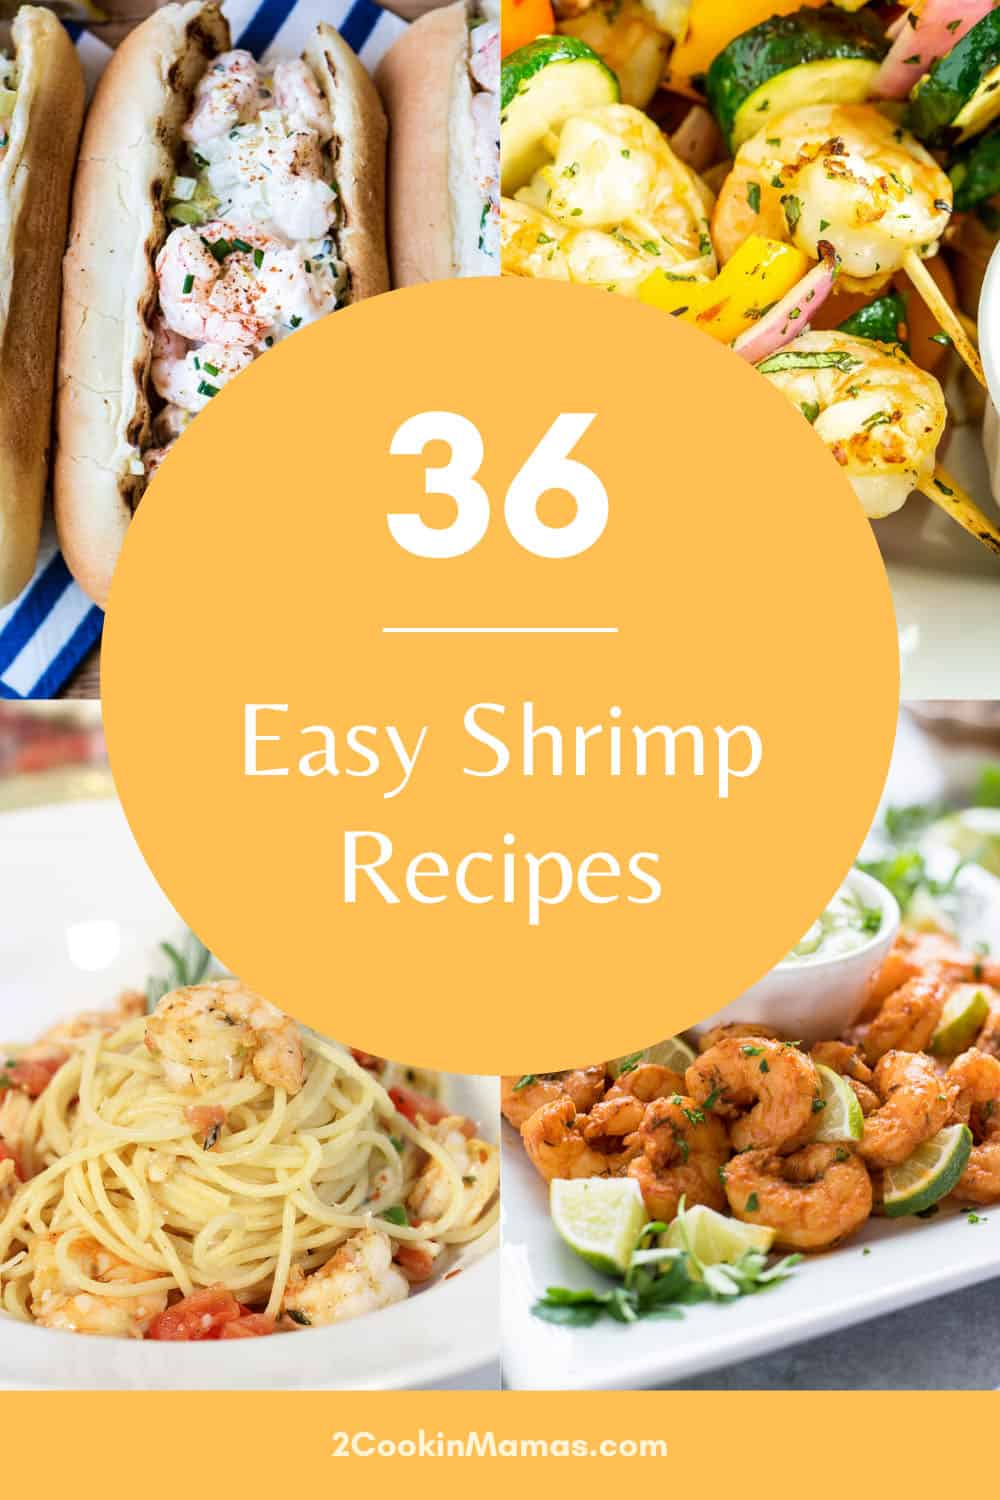 36 Easy Shrimp Recipes